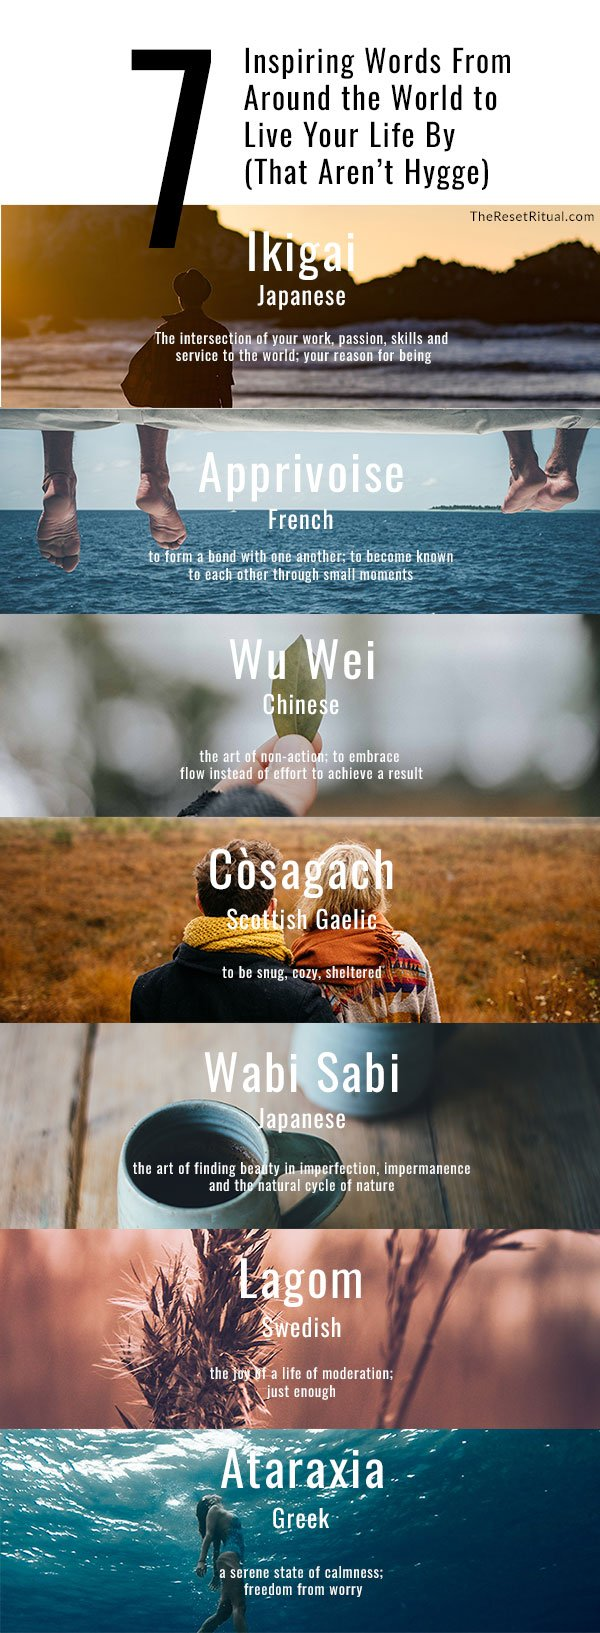 Beautiful words and definitions from around the world that inspire mindfulness, wellbeing, and purpose (that aren't hygge). Click to find out what French word, Japanese words, Chinese word, Swedish word, and Greek word made the list.